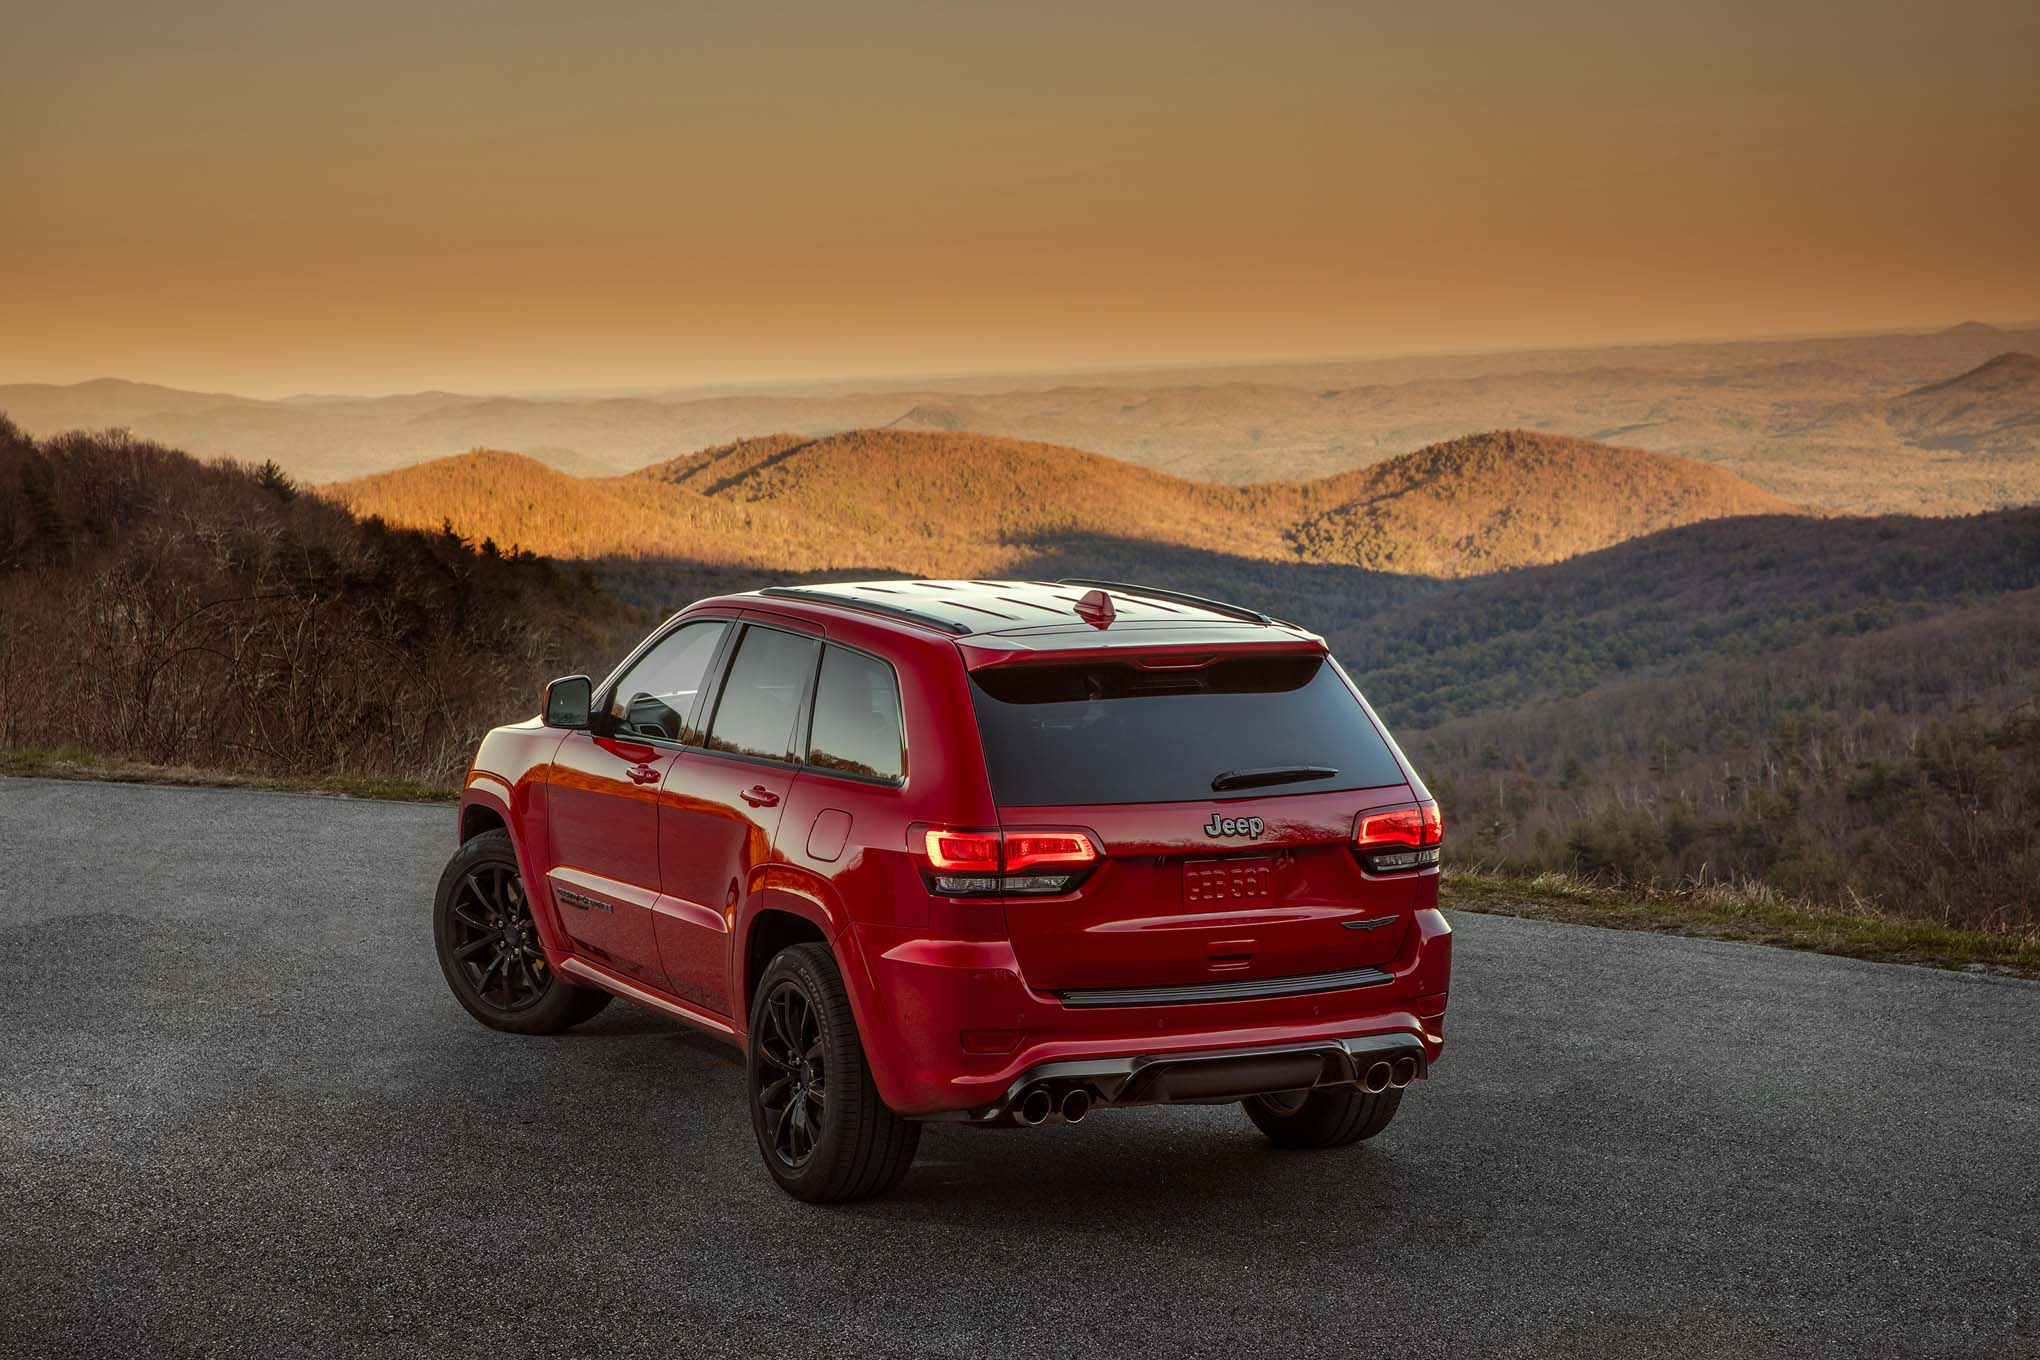 Jeep Grand Cherokee Trackhawk priced at $86995